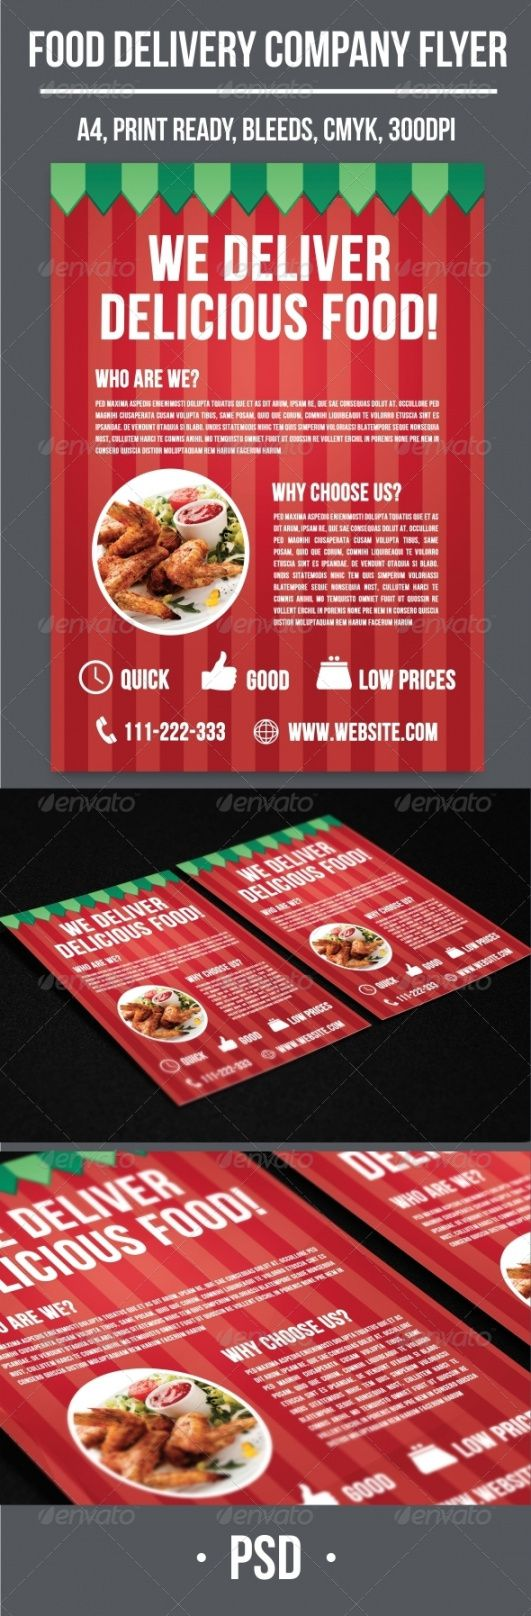 food delivery company flyer food delivery flyer template